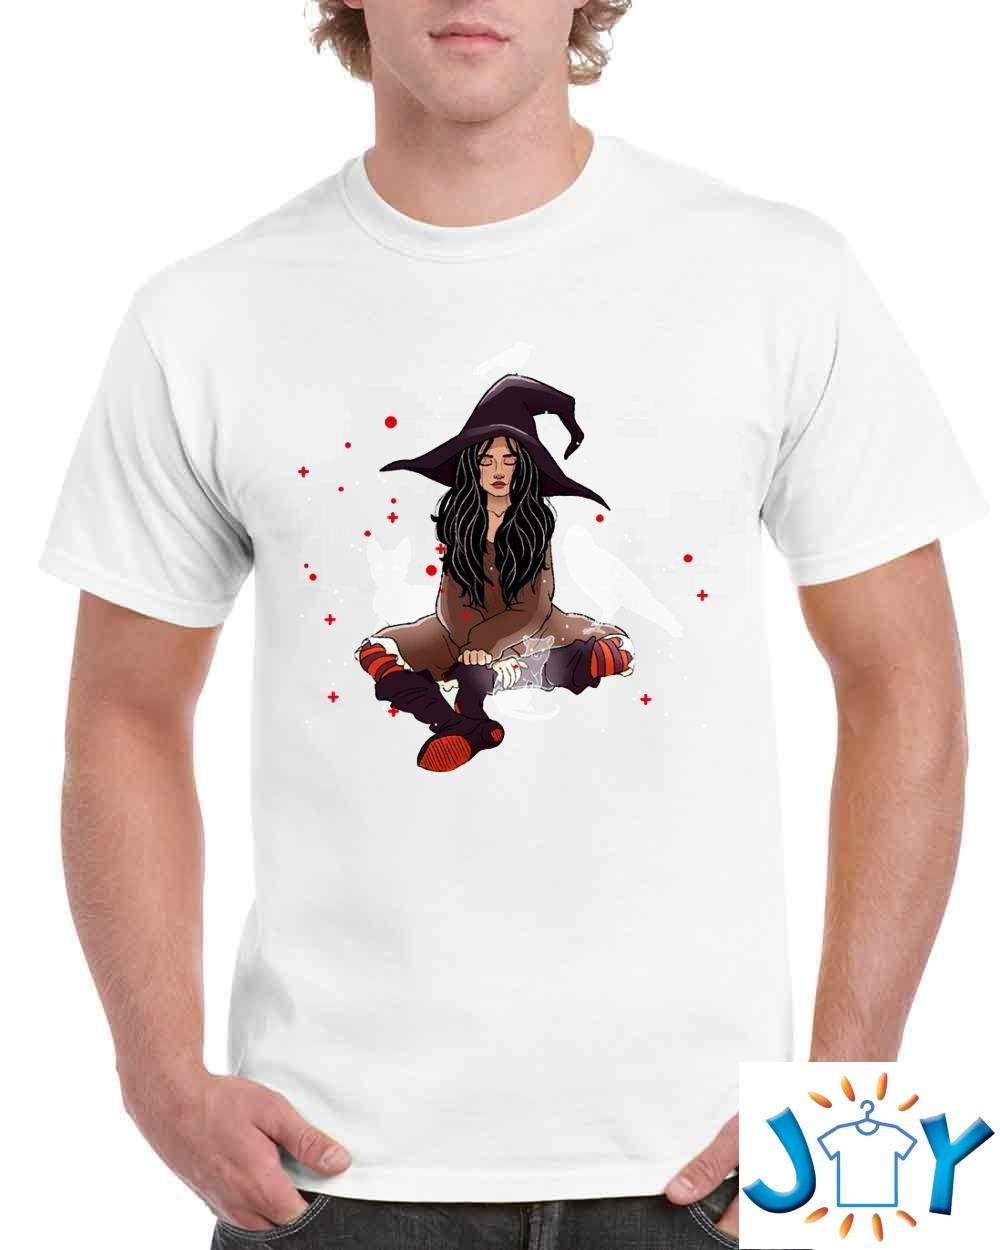 Your Empathy and Kindness Are Their Own Forms of Magic Witch Shirt